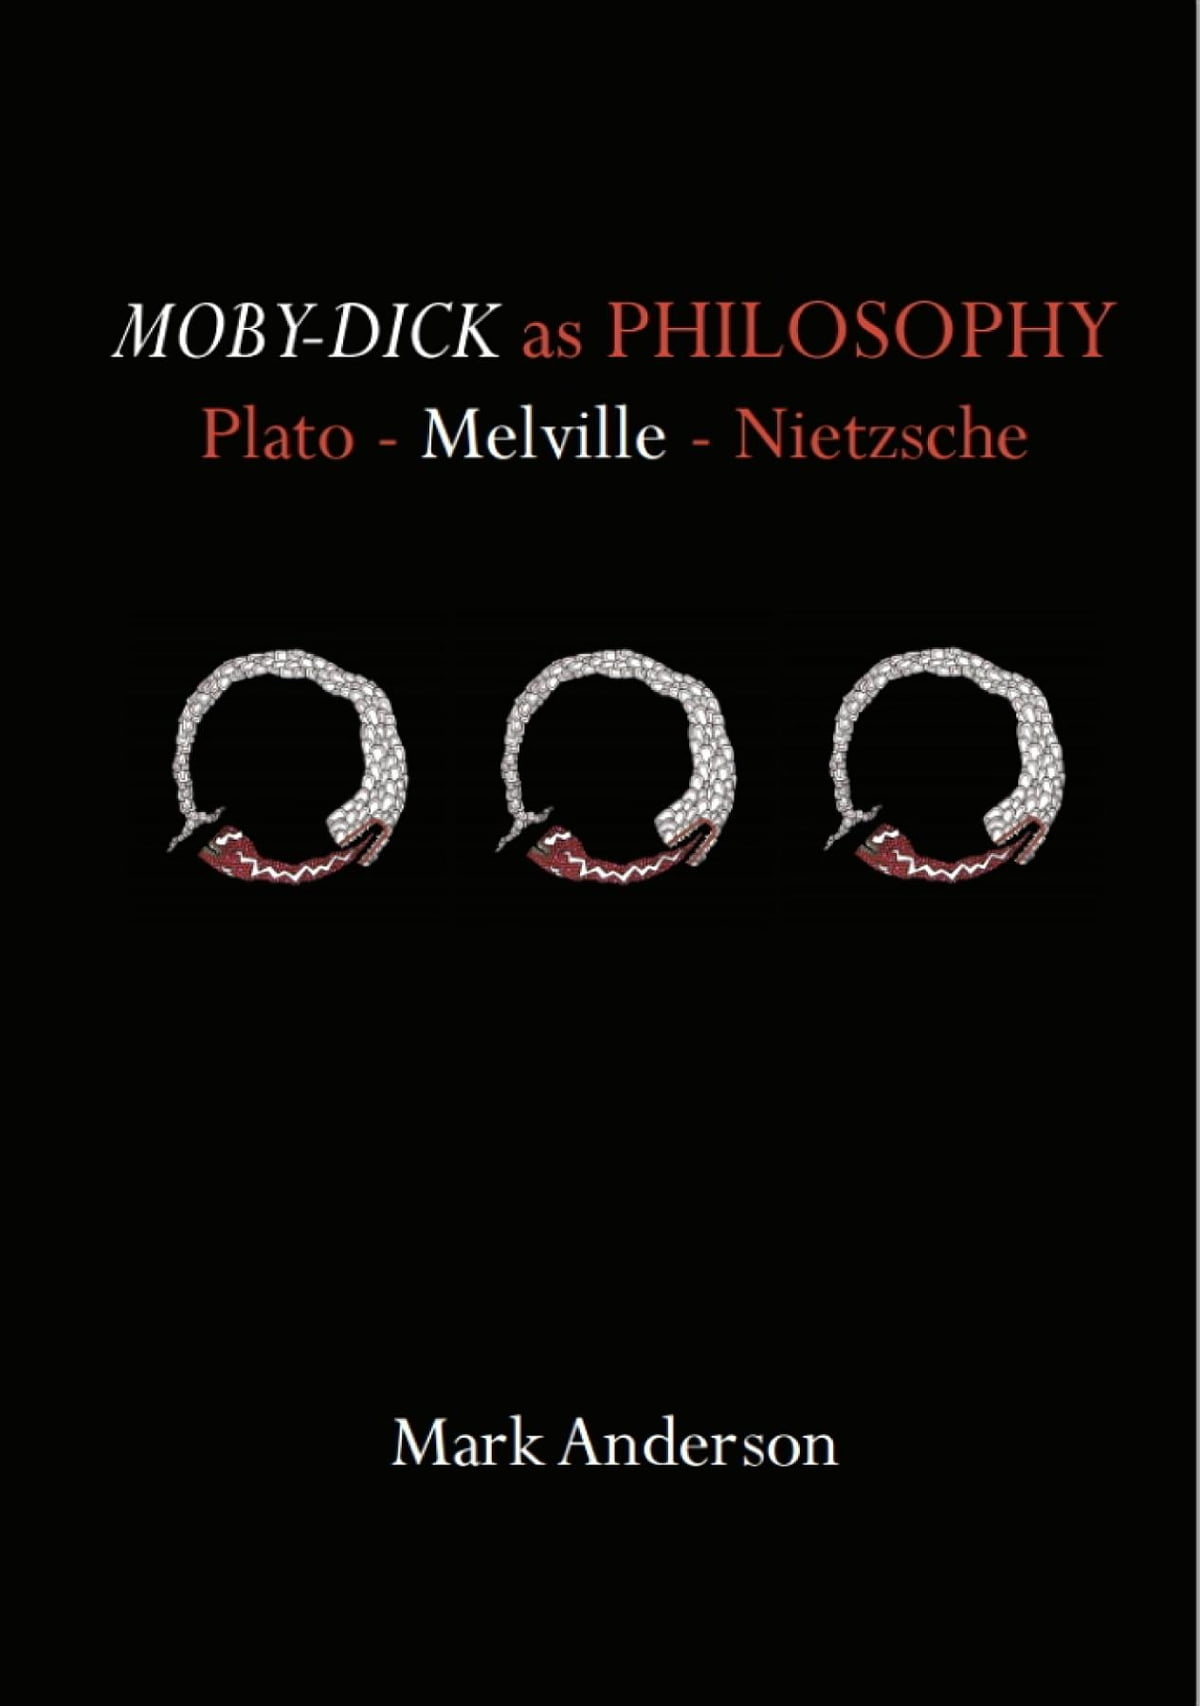 moby dick as the personification of the wrathful persistence of the omnipotent Zora neale hurston (bloom's modern critical views) - ebook download as pdf file (pdf), text file (txt) or read book online.